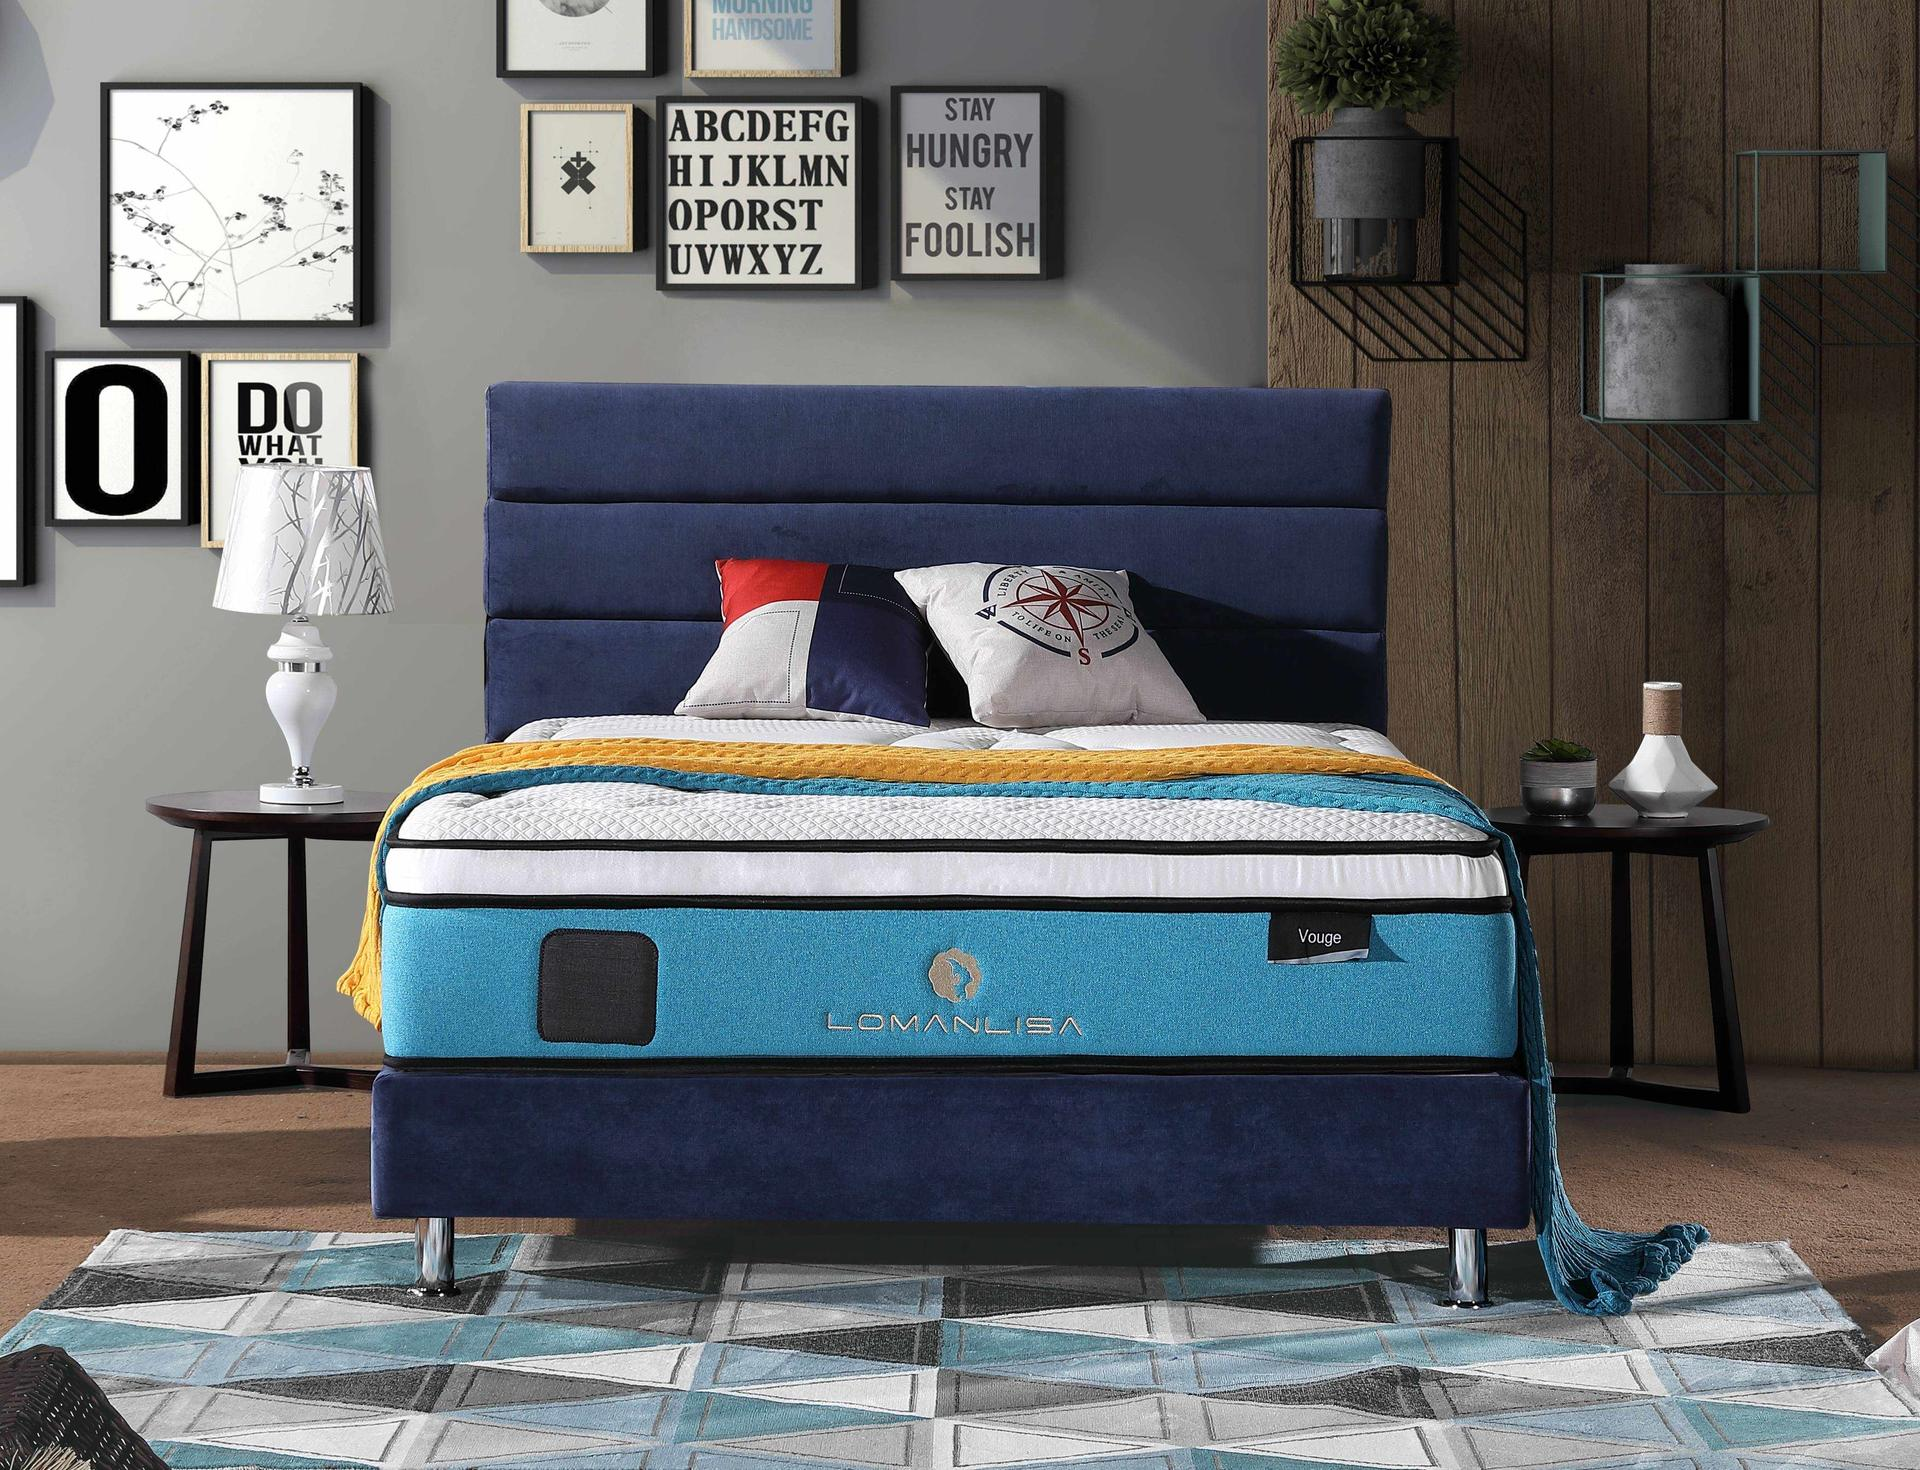 34PA-64 | Luxury Design 5 Zones Pocket Spring Mattress with Memory Foam and Natural Latex